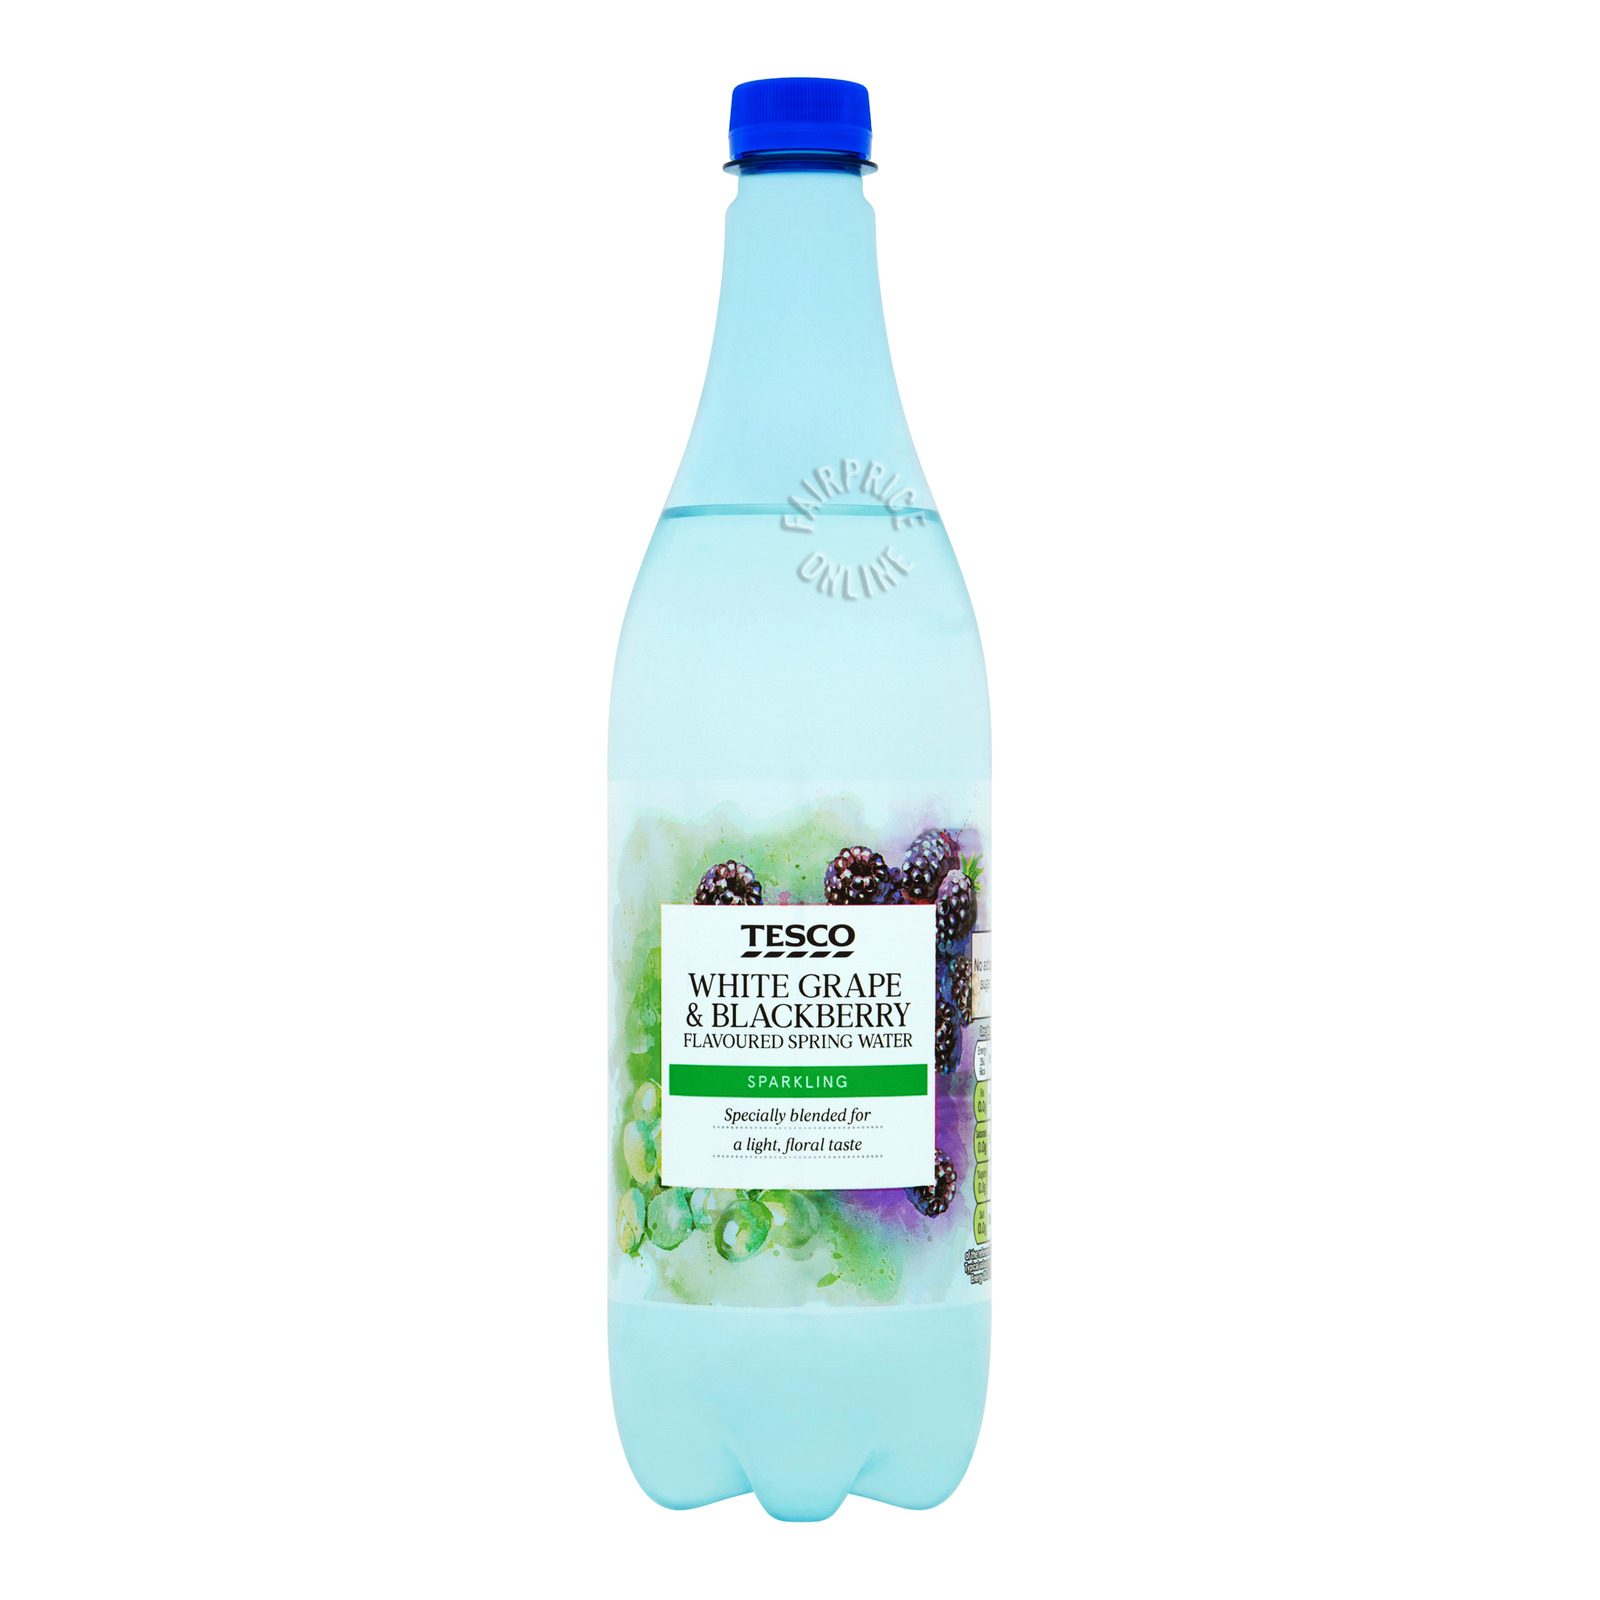 Tesco Flavoured Spring Water - White Grape & Blackberry